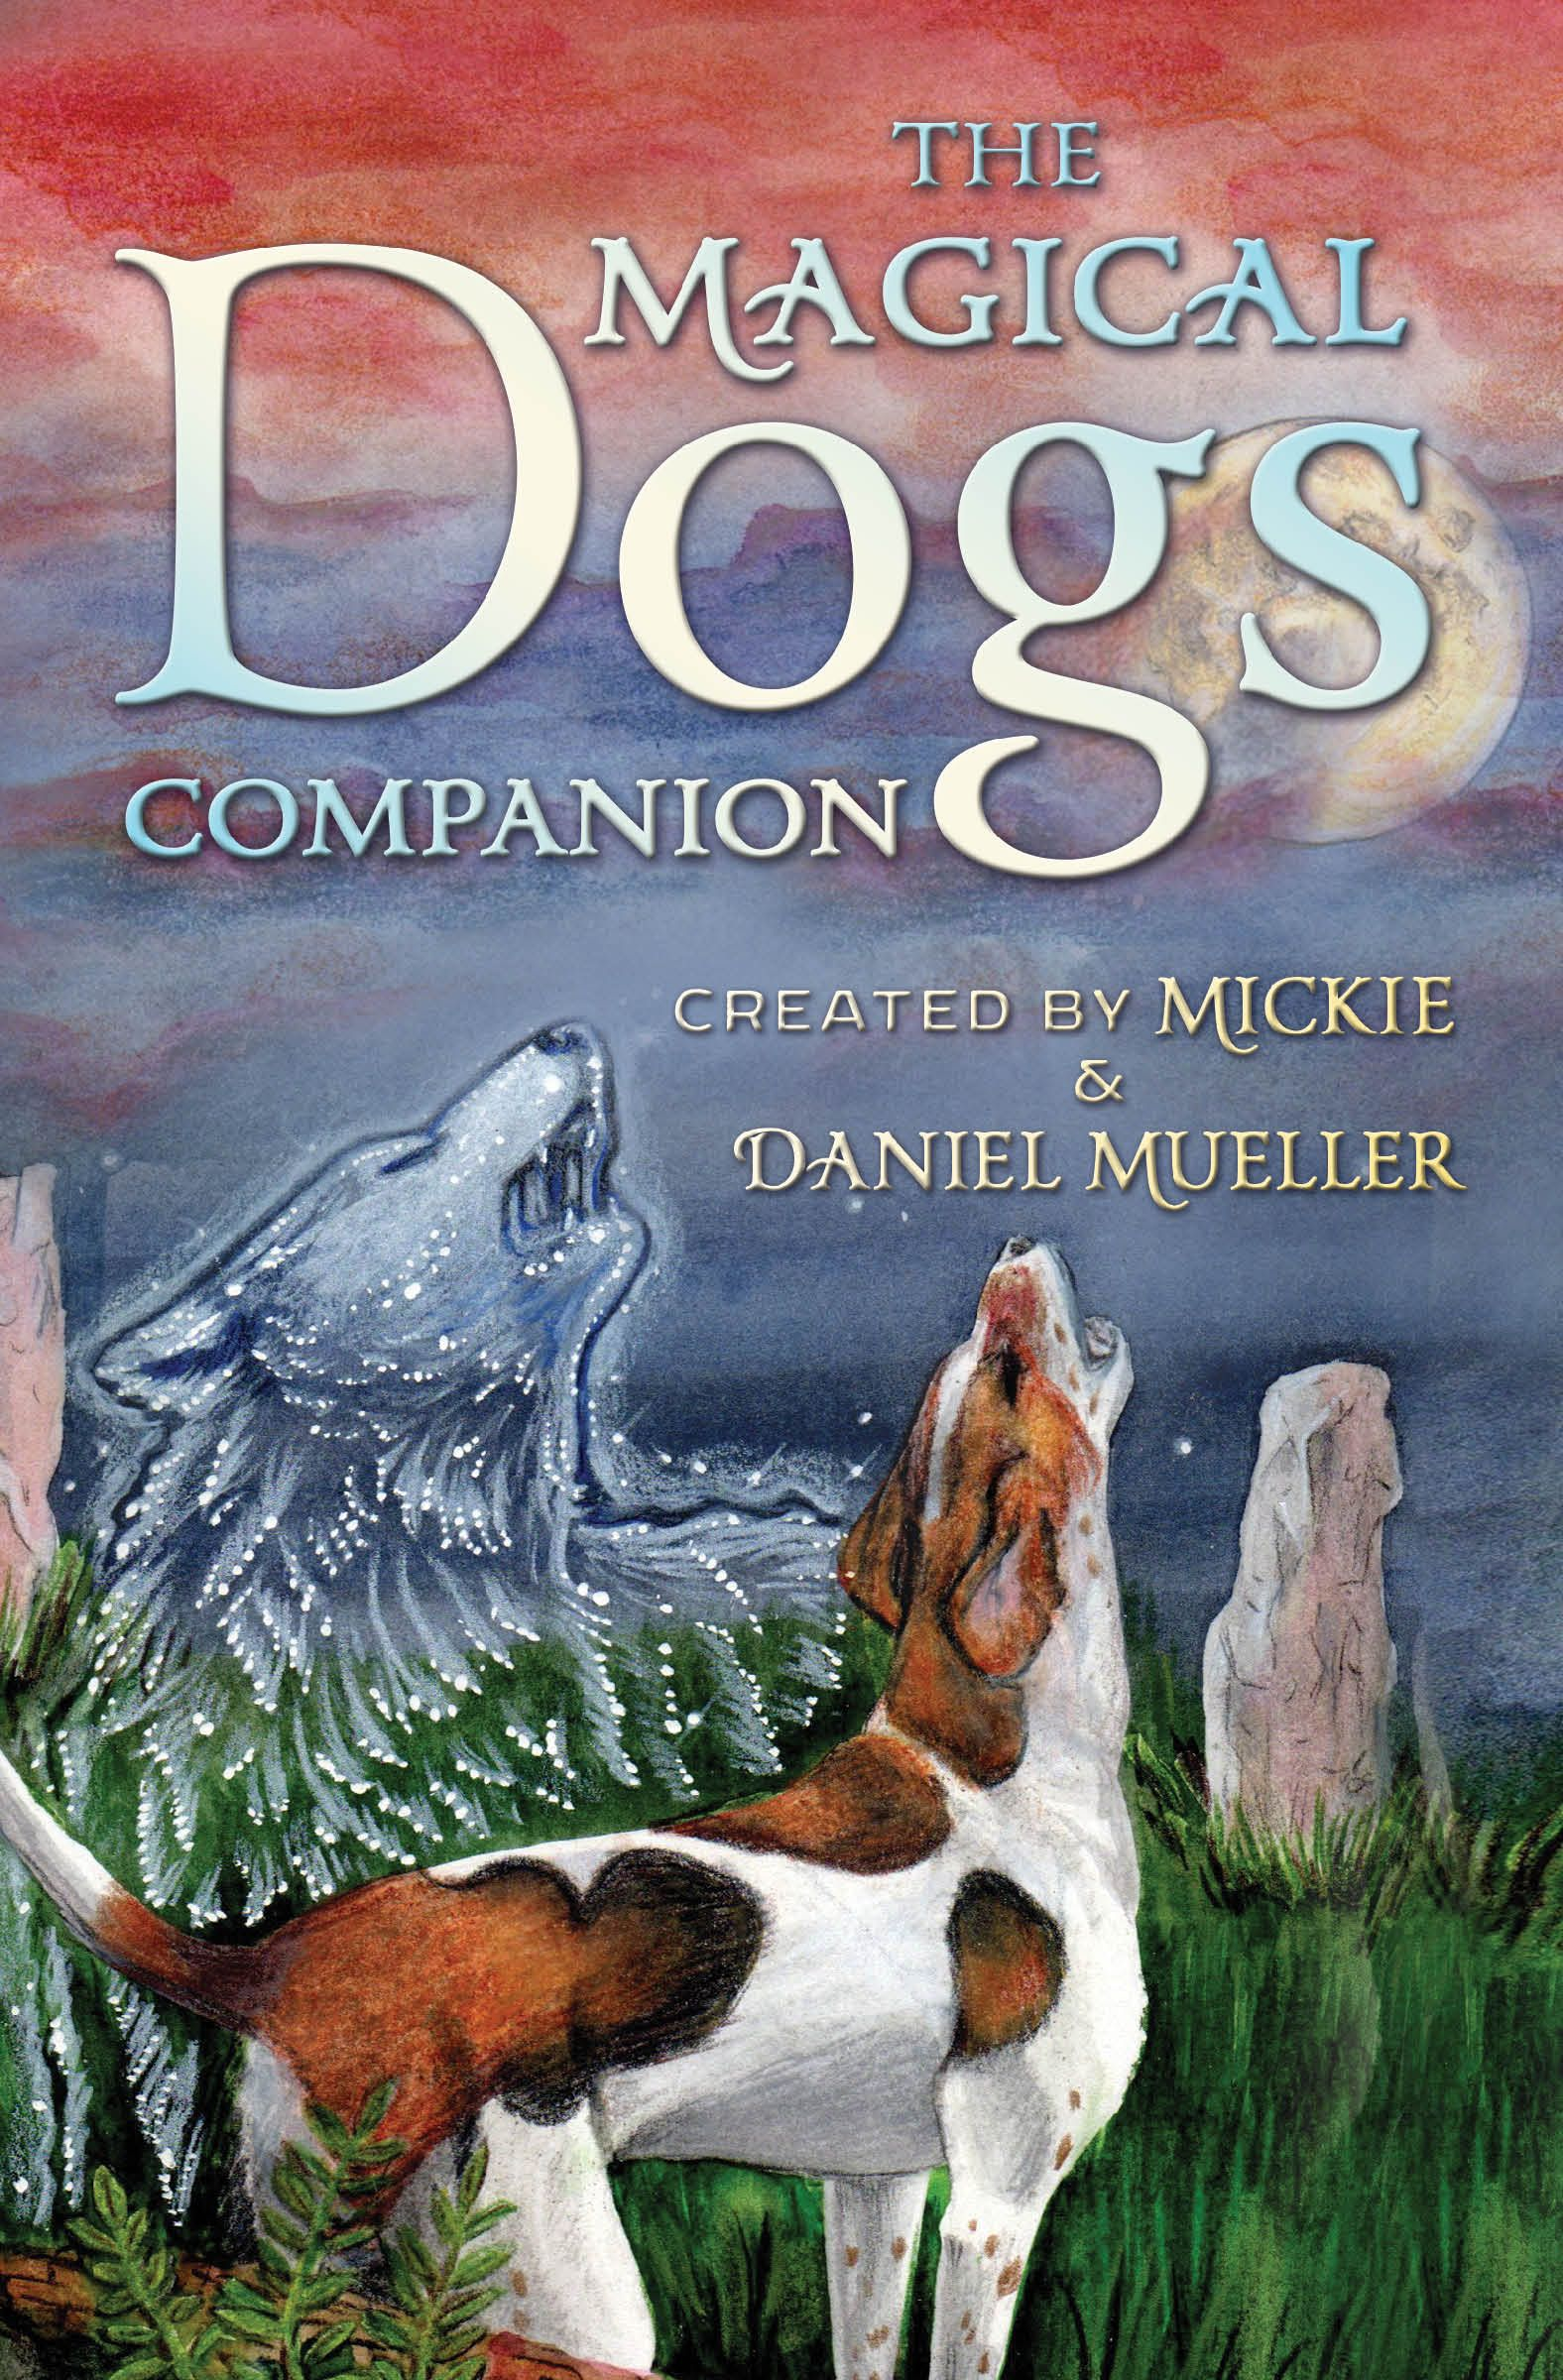 The book cover for magical dogs tarot the moon of course